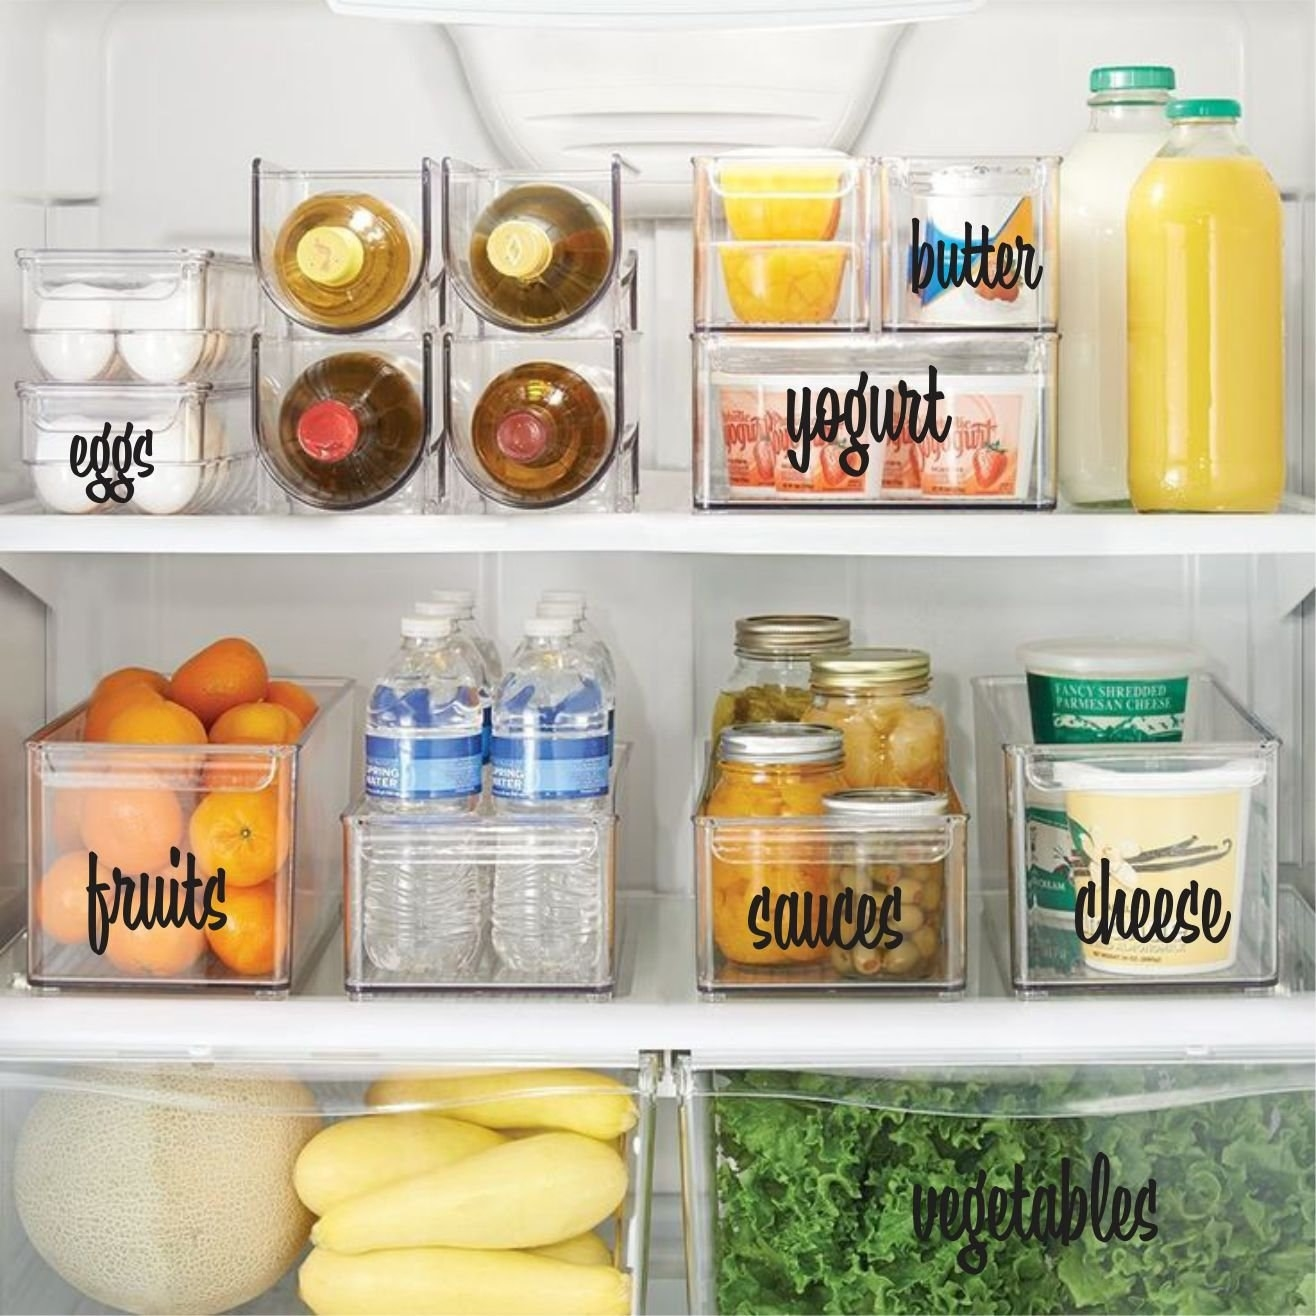 fridge with plastic bins labeled with black bold easy-to-read cursive